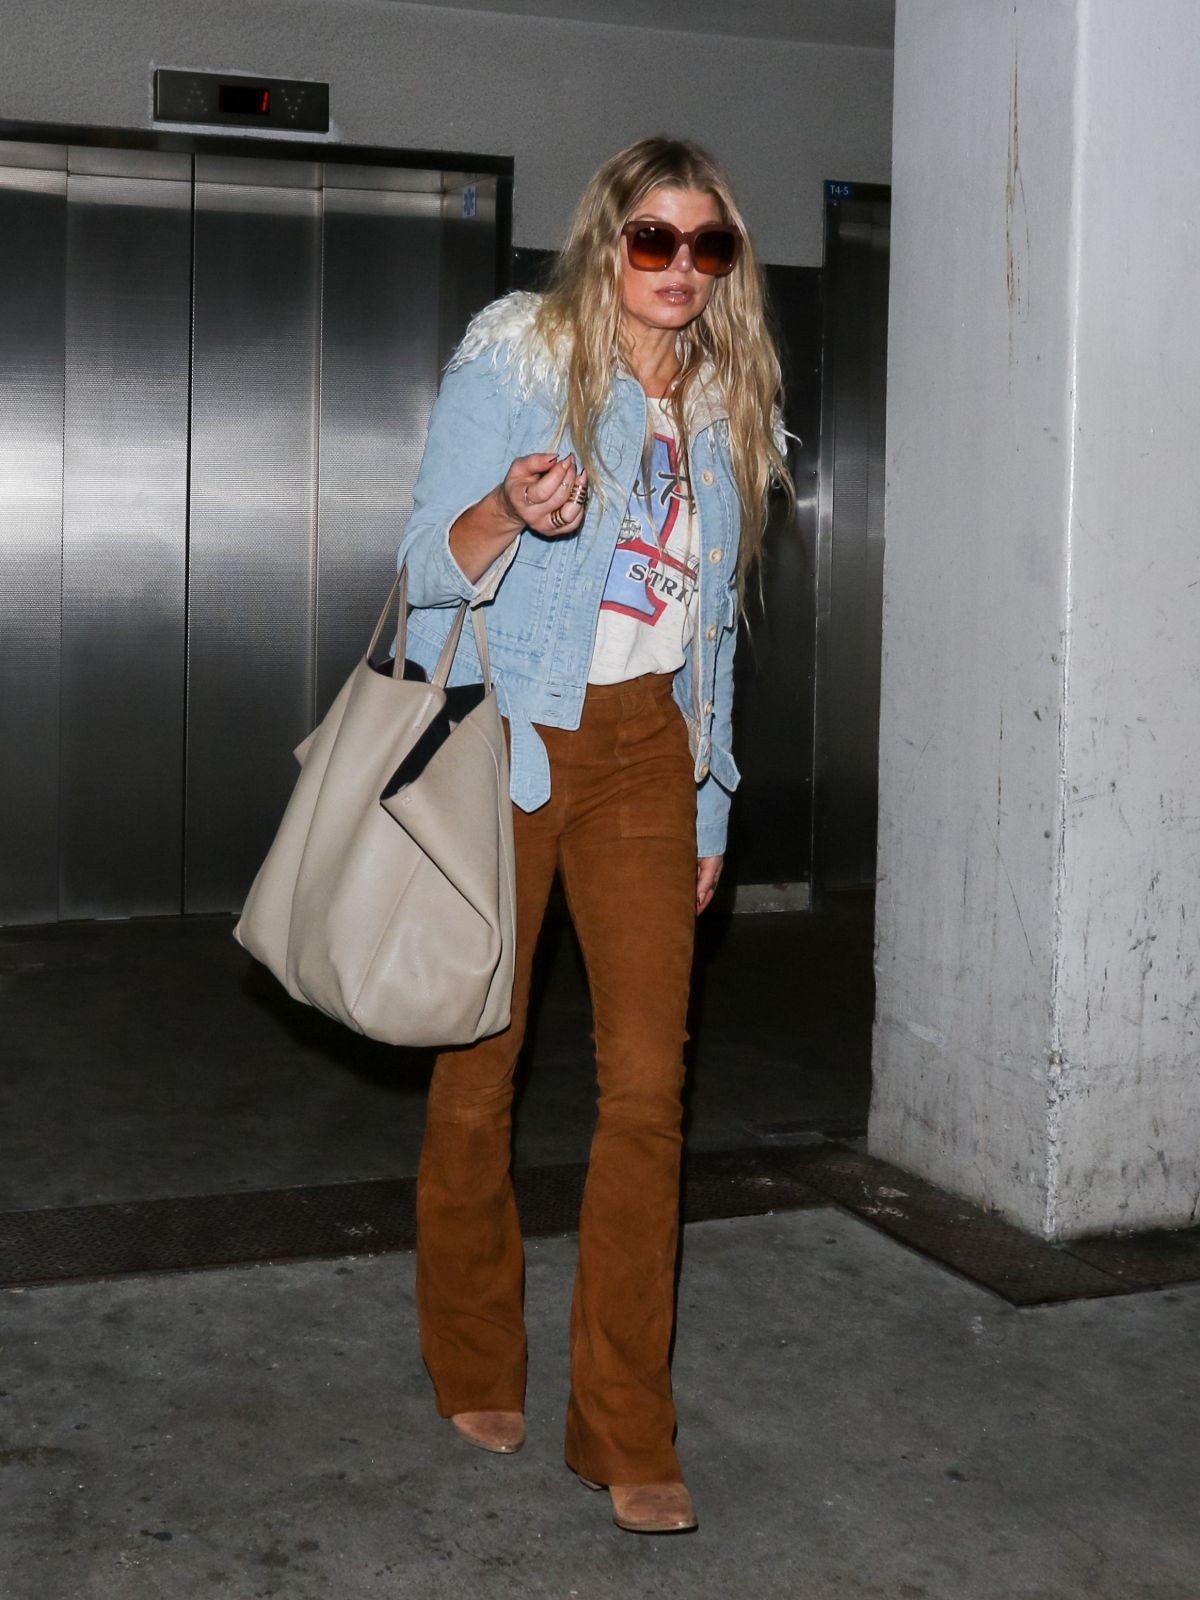 stacy-fergie-ferguson-at-lax-airport-in-los-angeles-10-21-2015_4